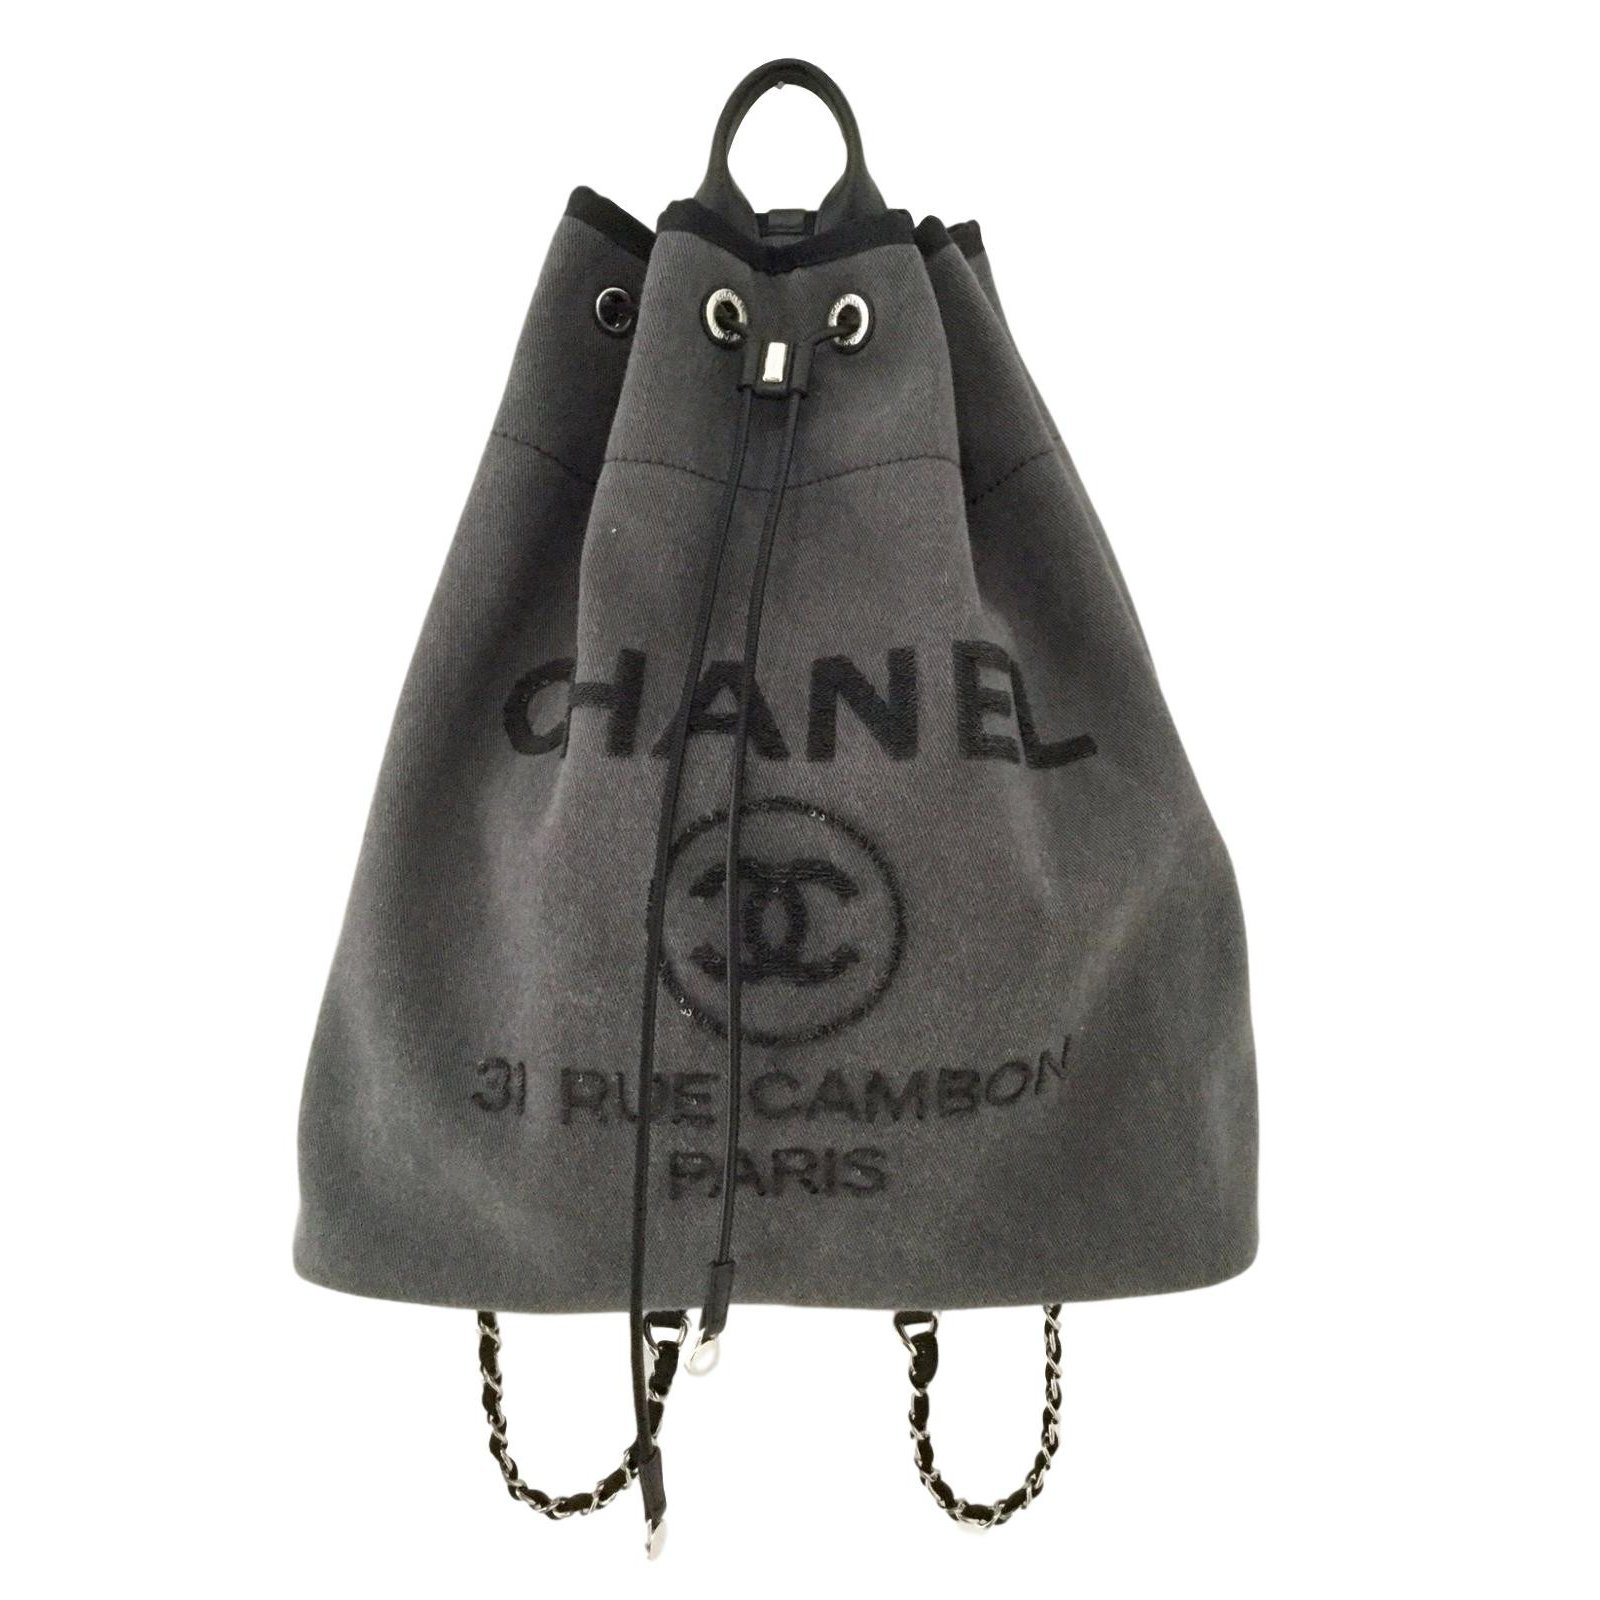 b445a17e6 Chanel Deauville Canvas Drawstring Backpack Bag | Building Materials ...